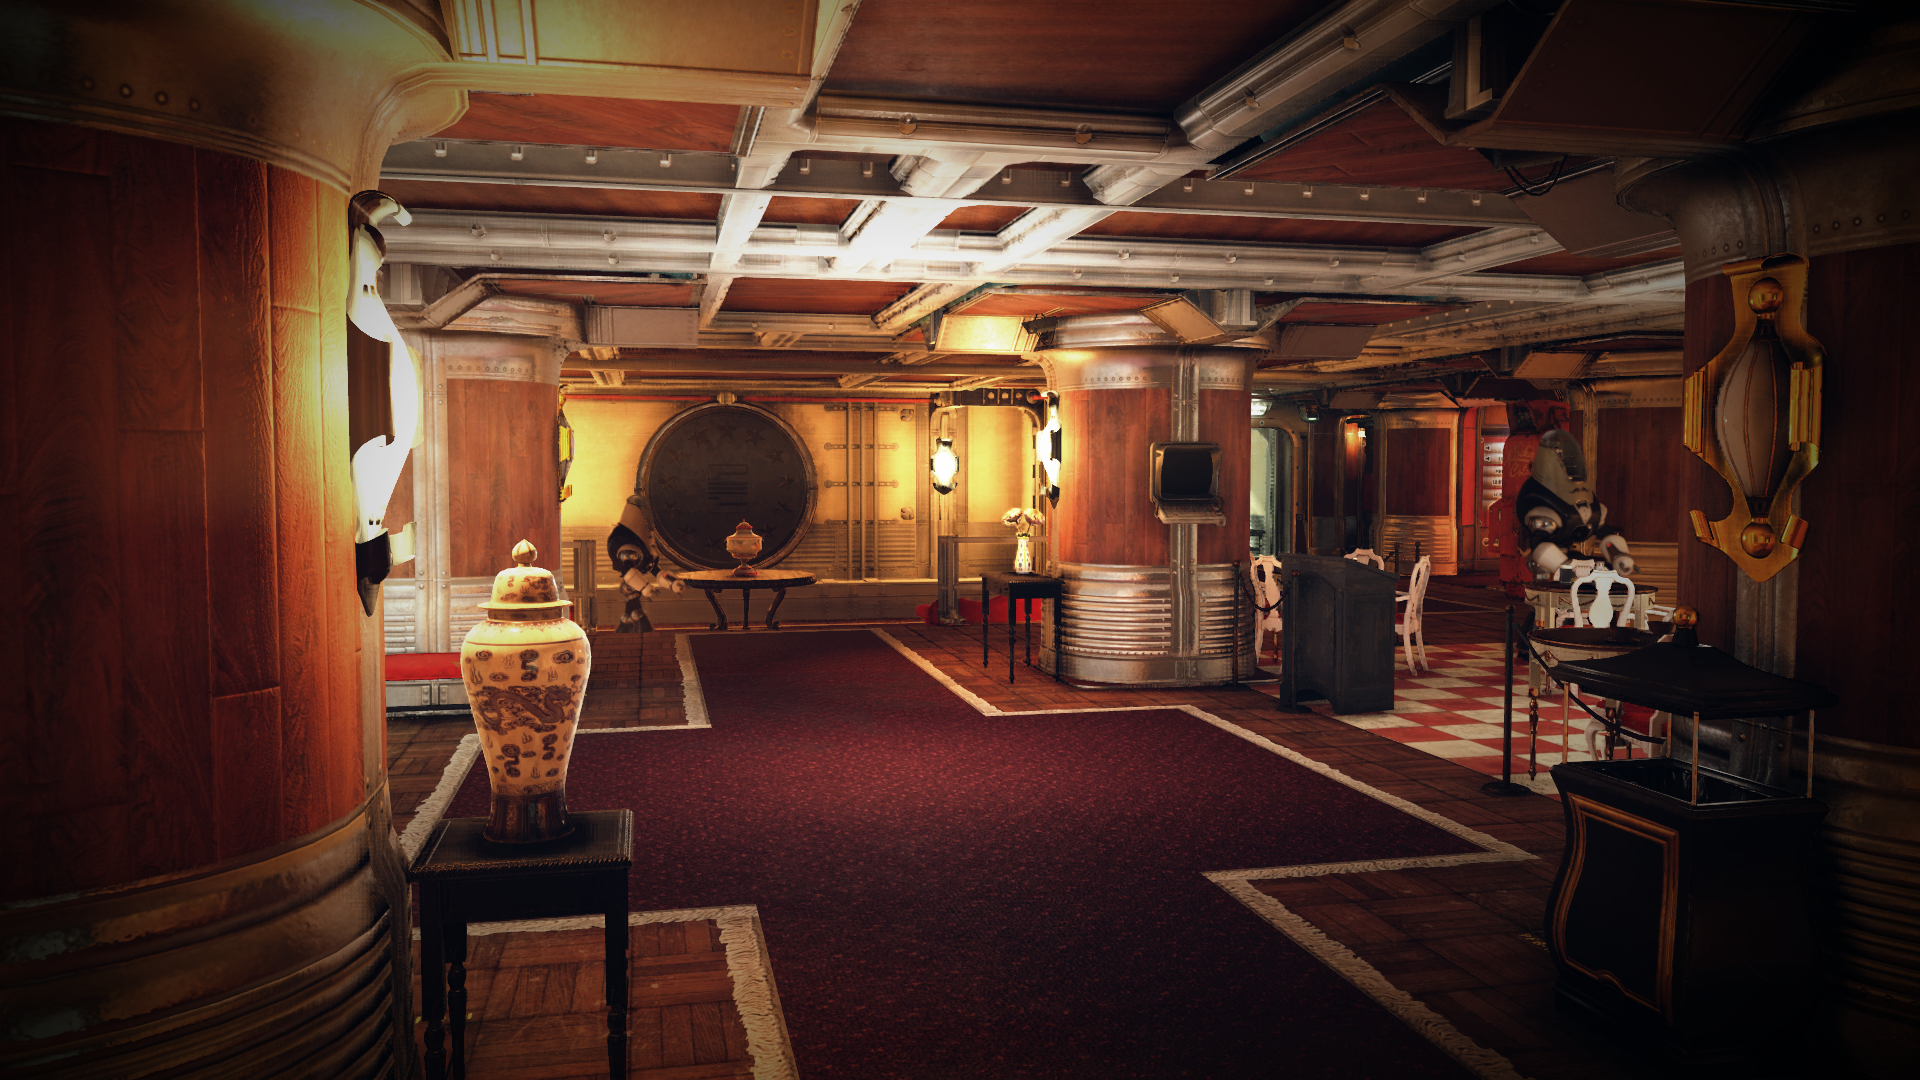 Whitespring bunker foyer